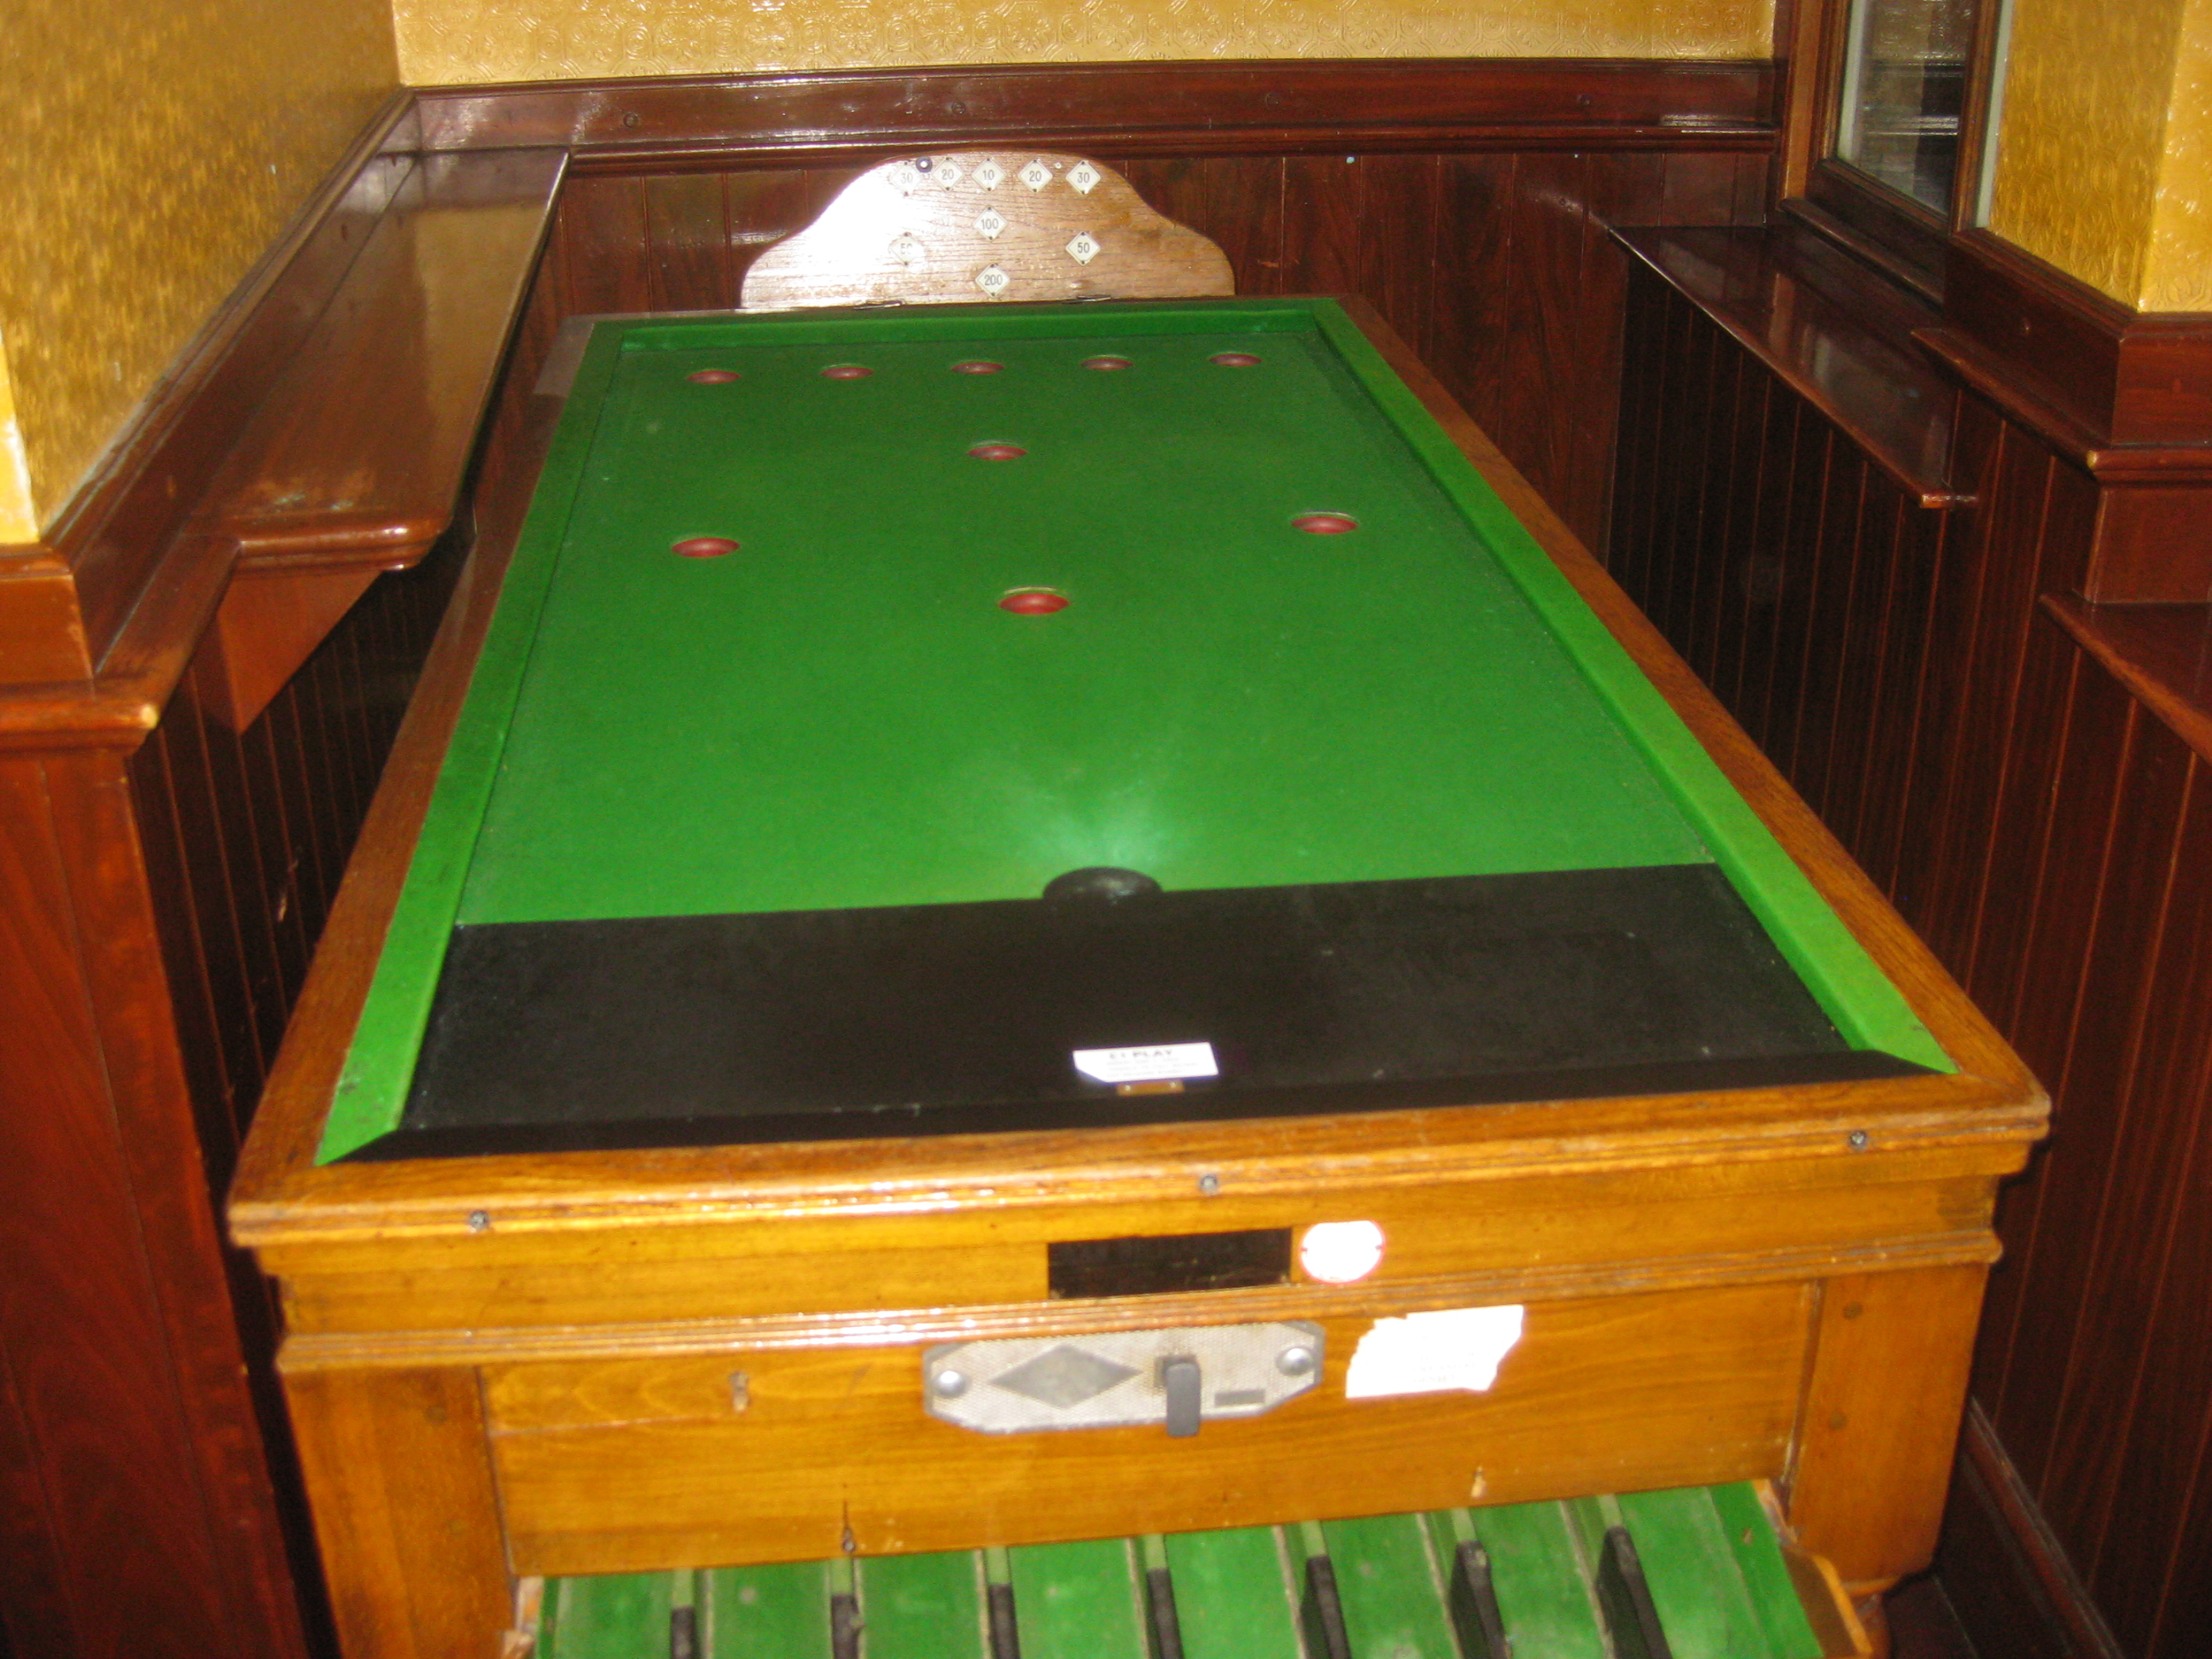 Oddly Shaped Pool Tables That Are Fun To Play On Wow Amazing - Games to play on a pool table